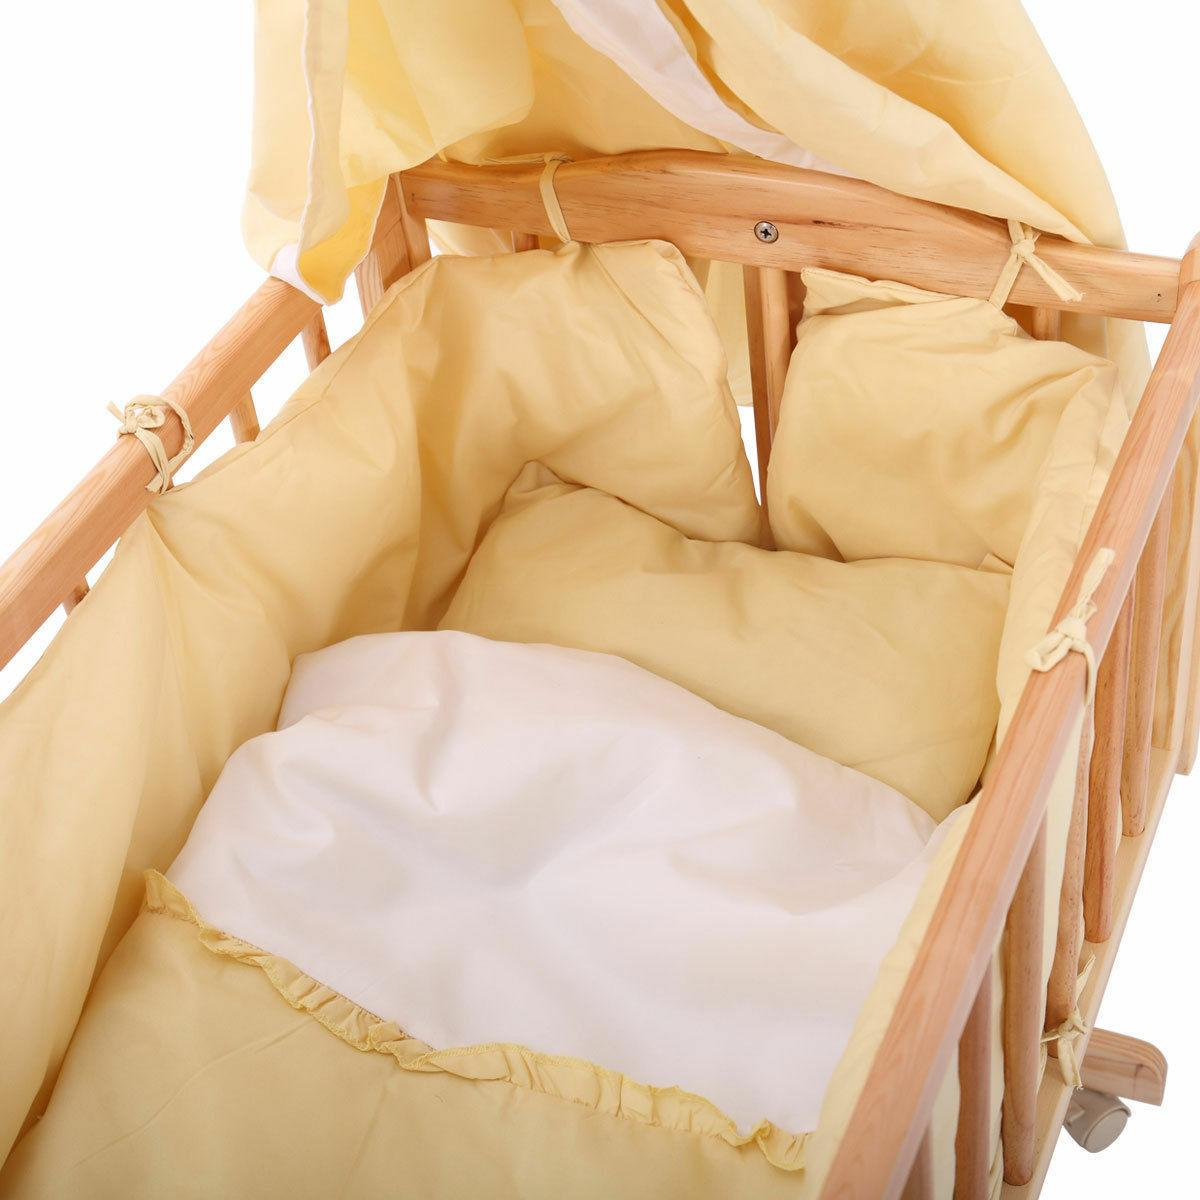 Pine Wood Newborn Toddler Bed Cradle Furniture